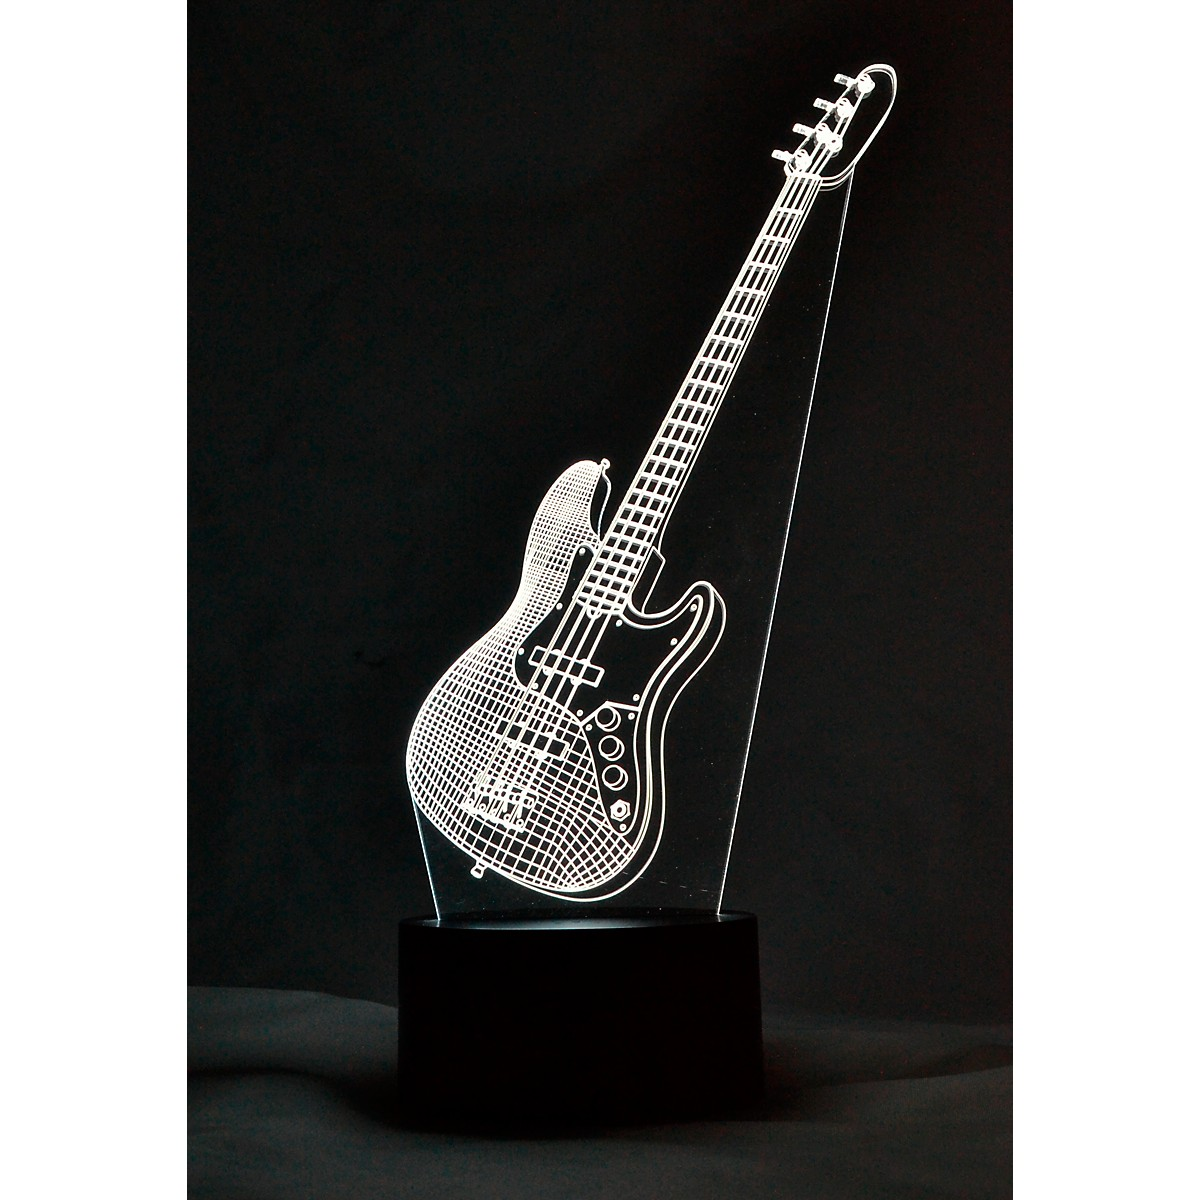 AIM Bass Guitar 3D LED Lamp Optical Illusion Light